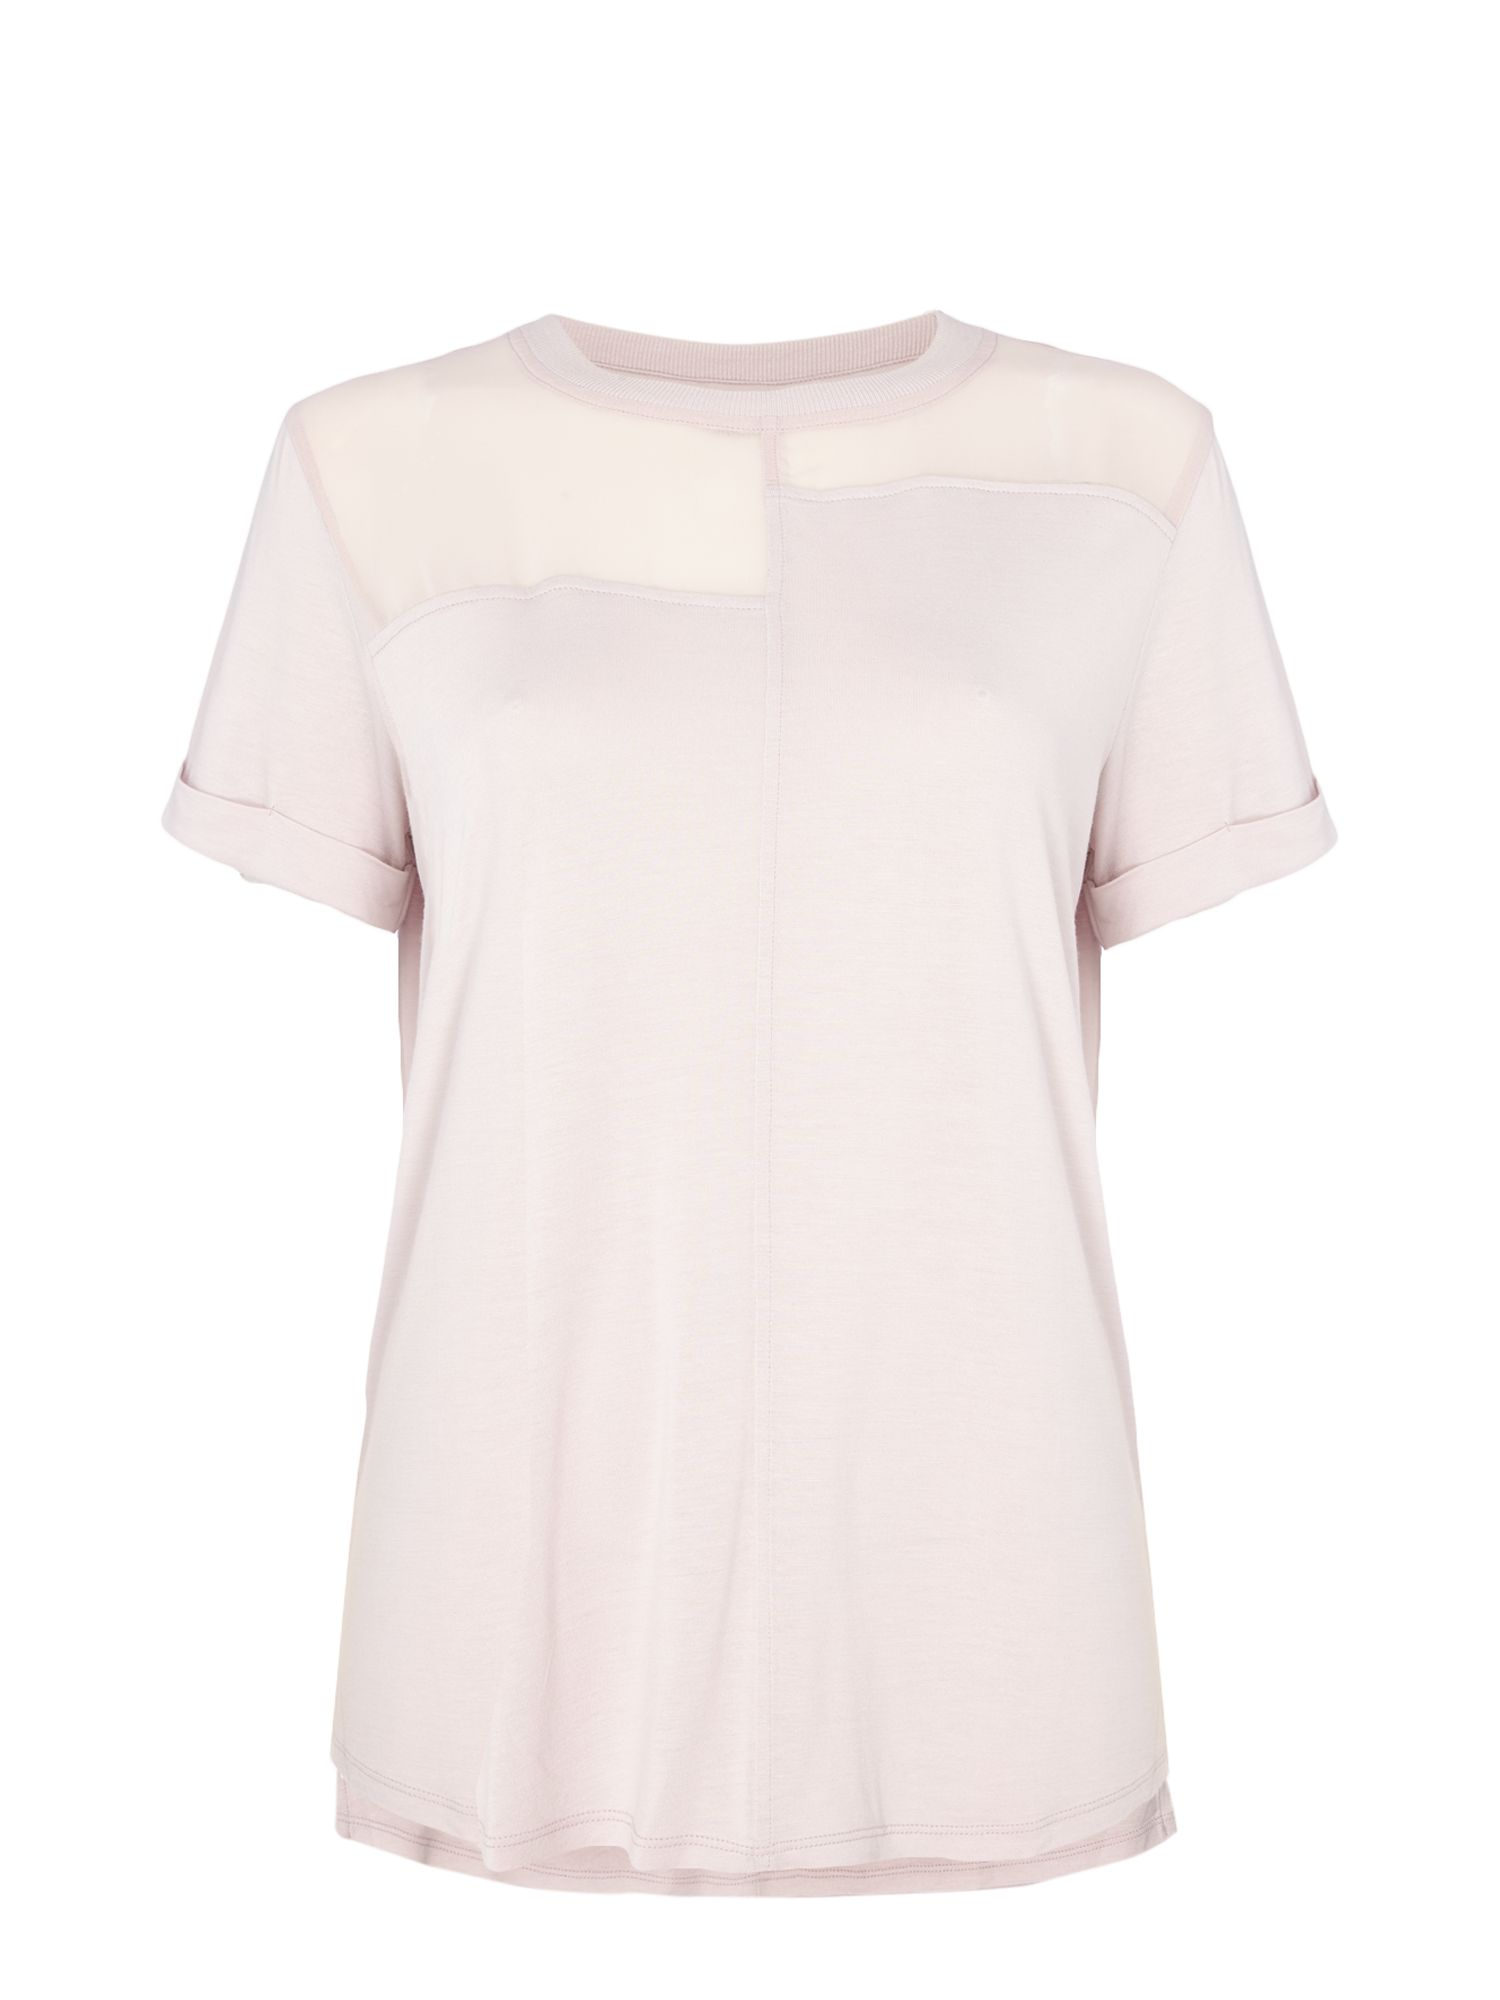 Label Lab Chiffon mix & match tee, Pink